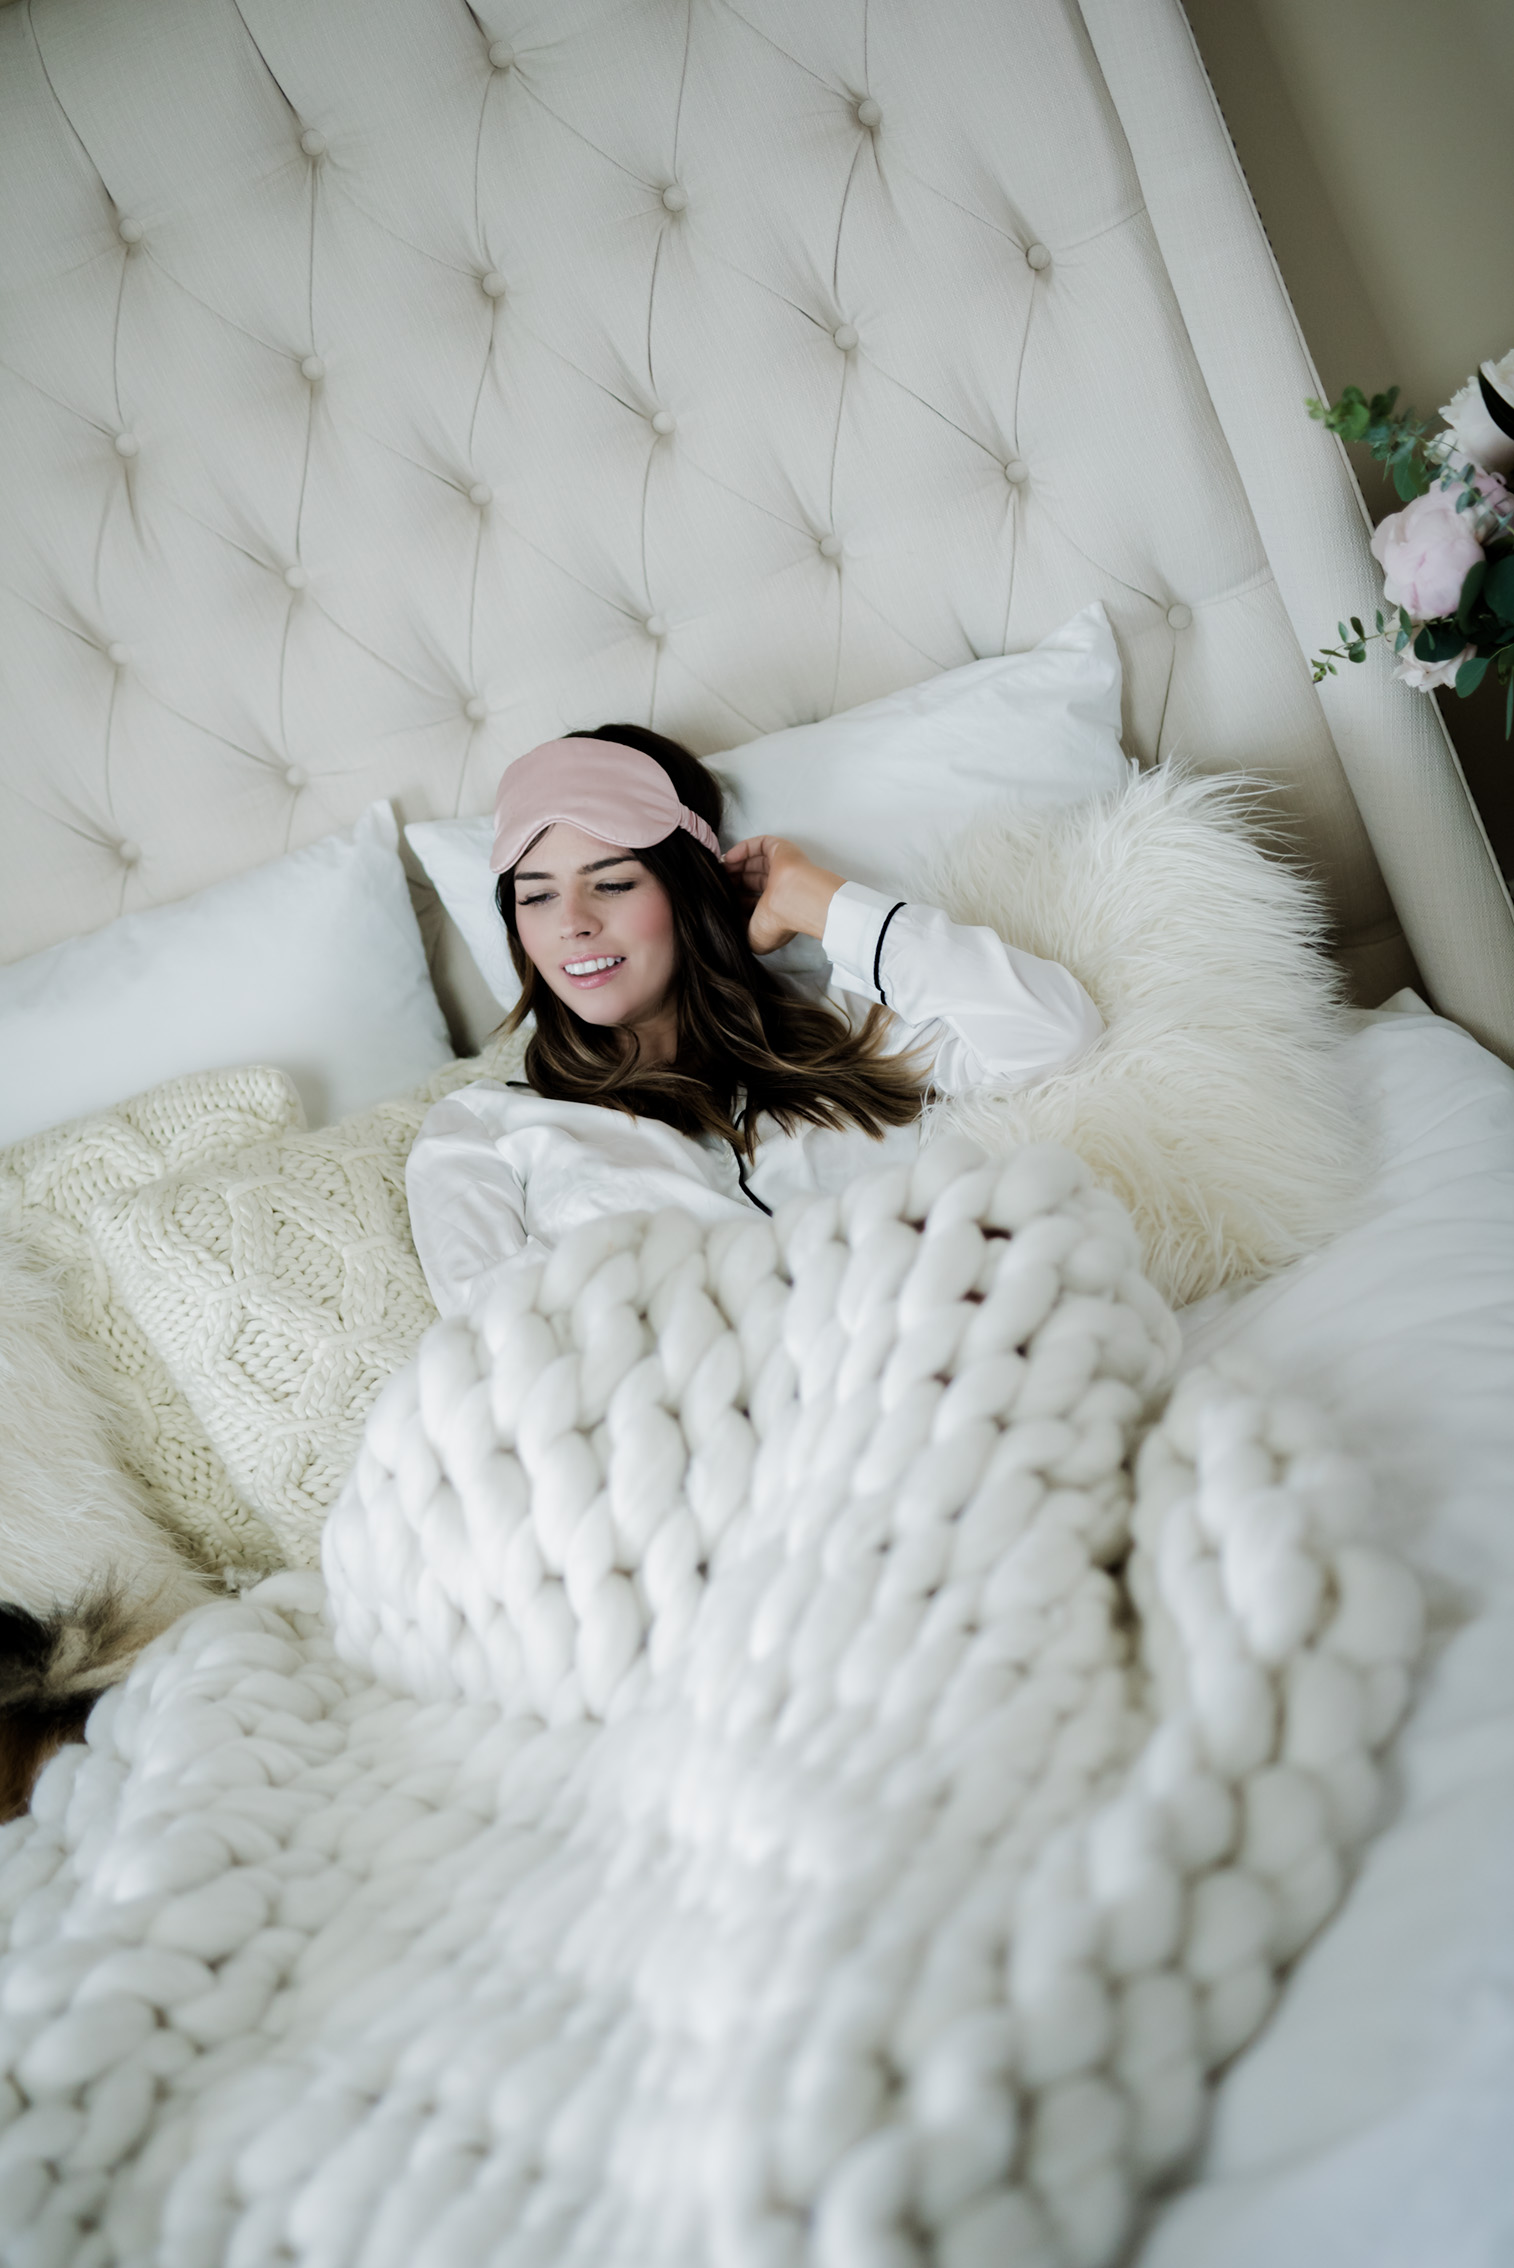 Tiffany Jais Houston fashion and lifestyle blogger | Lull mattress, chunky wool knit blanket for under 100